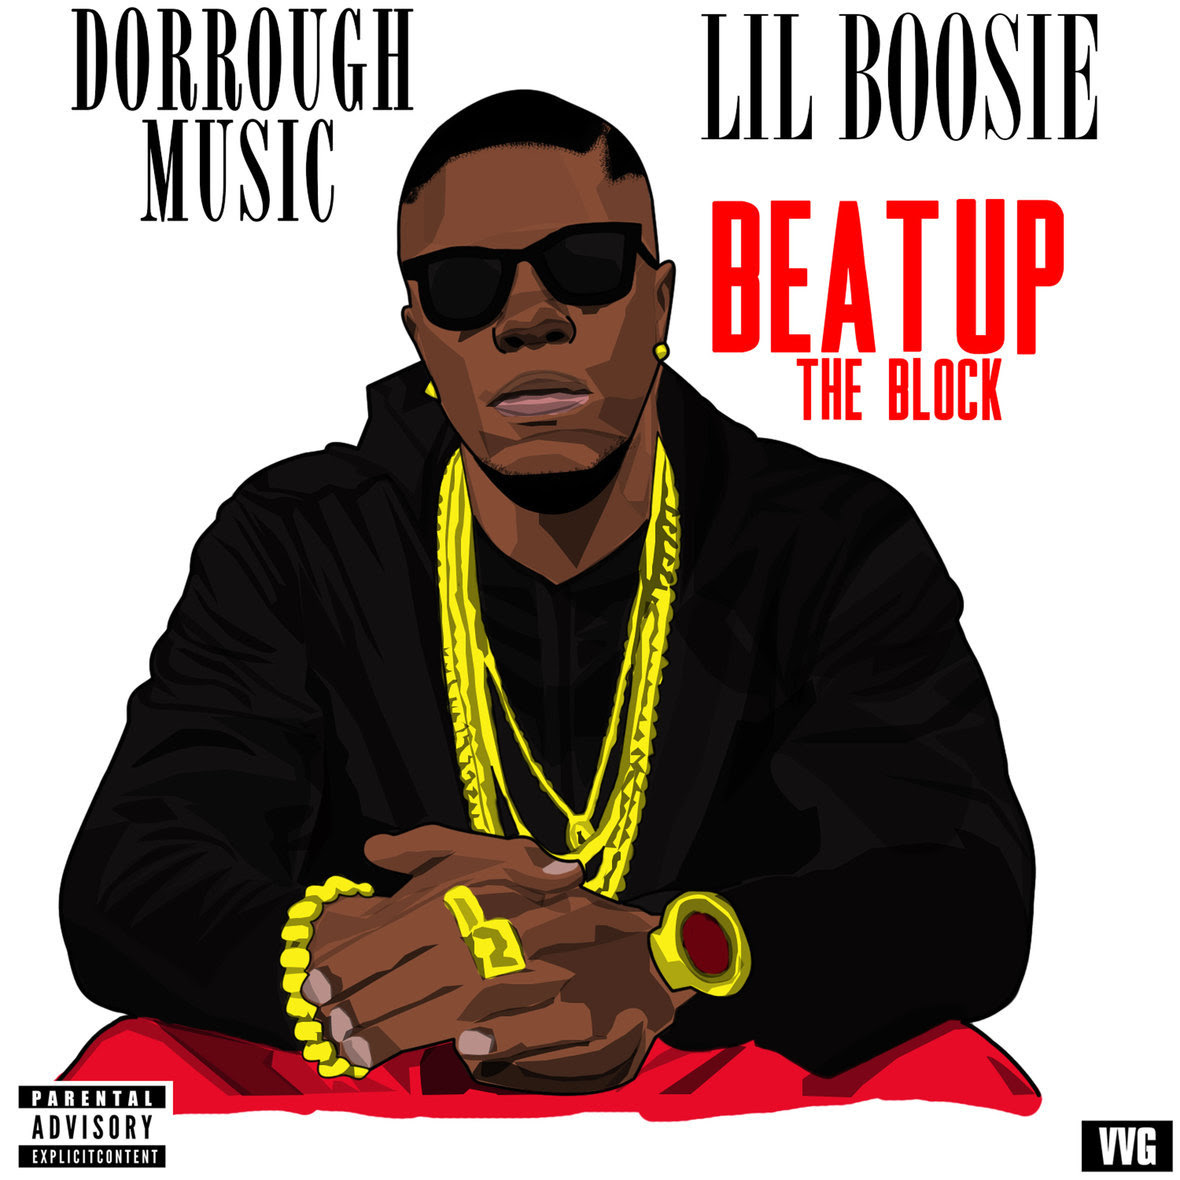 Dorrough Music ft Boosie - Beat Up The Block artwork